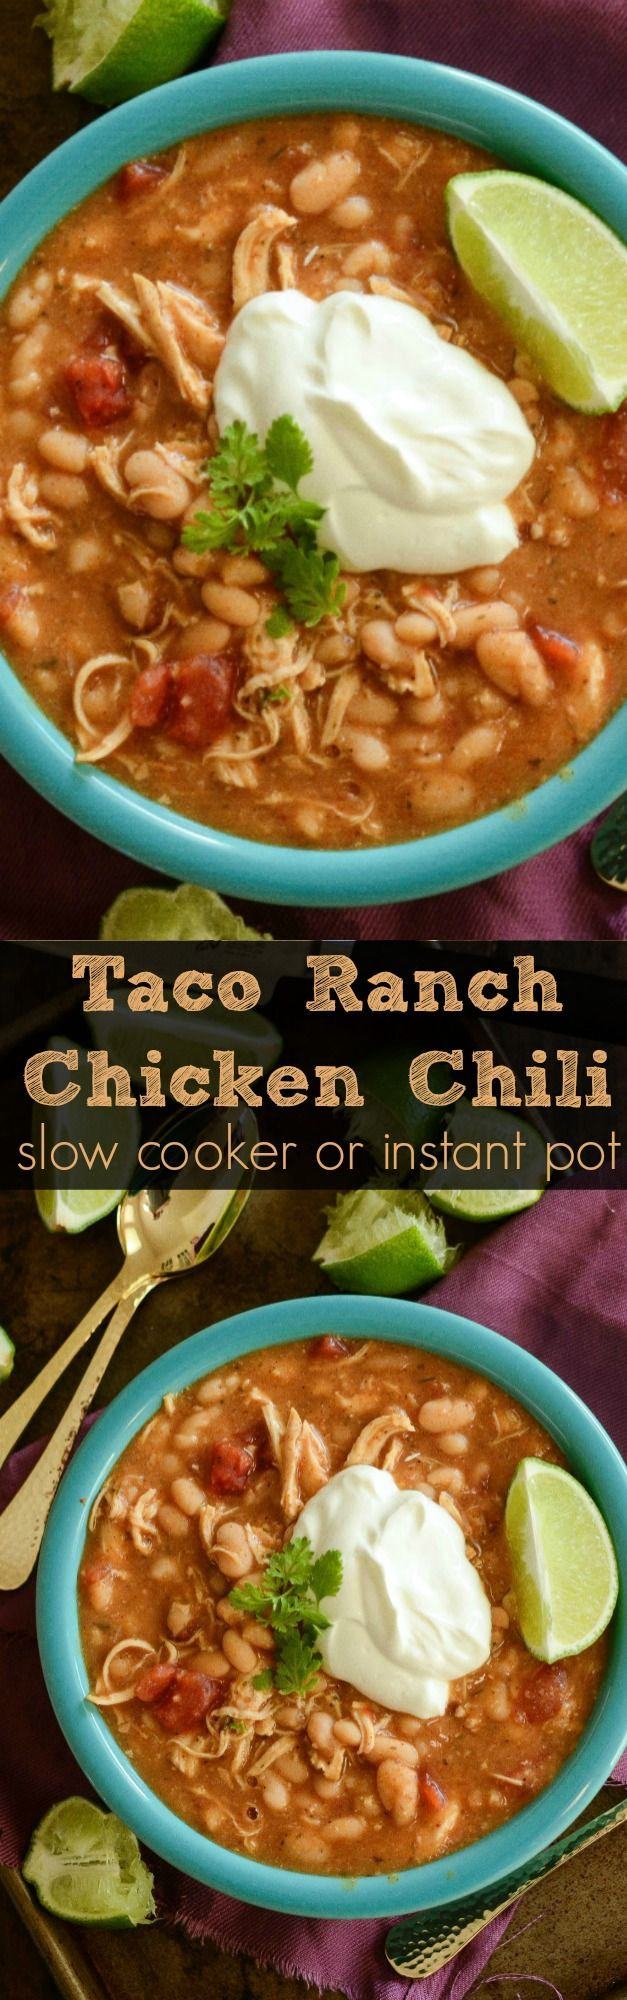 This amazing Taco Ranch Chicken Chili is made with just 5 ingredients in a slow coooker